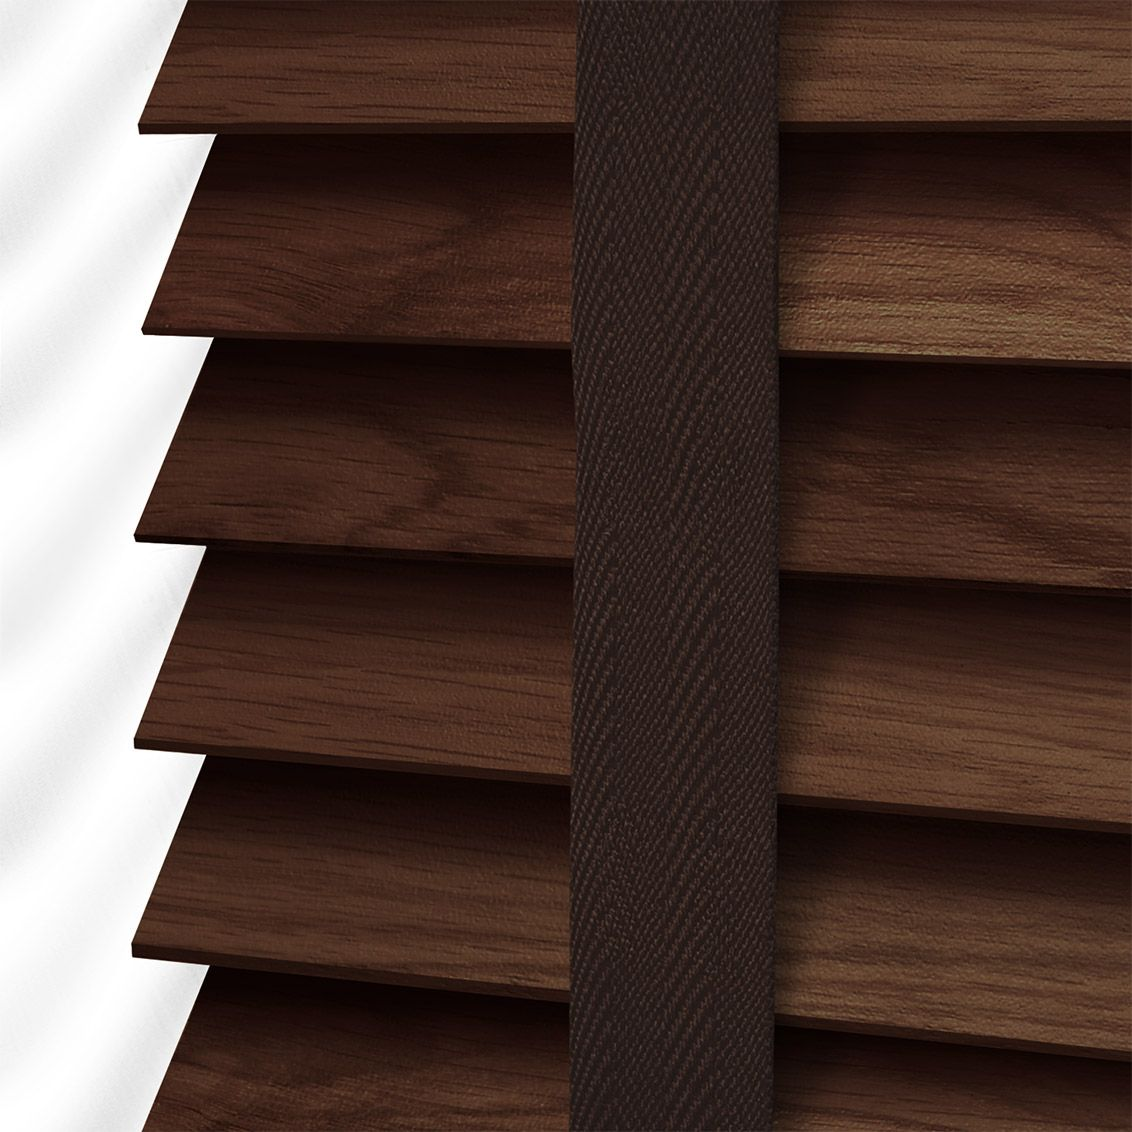 This Wooden Blind Will Add Such A Scoop Of Richness At The